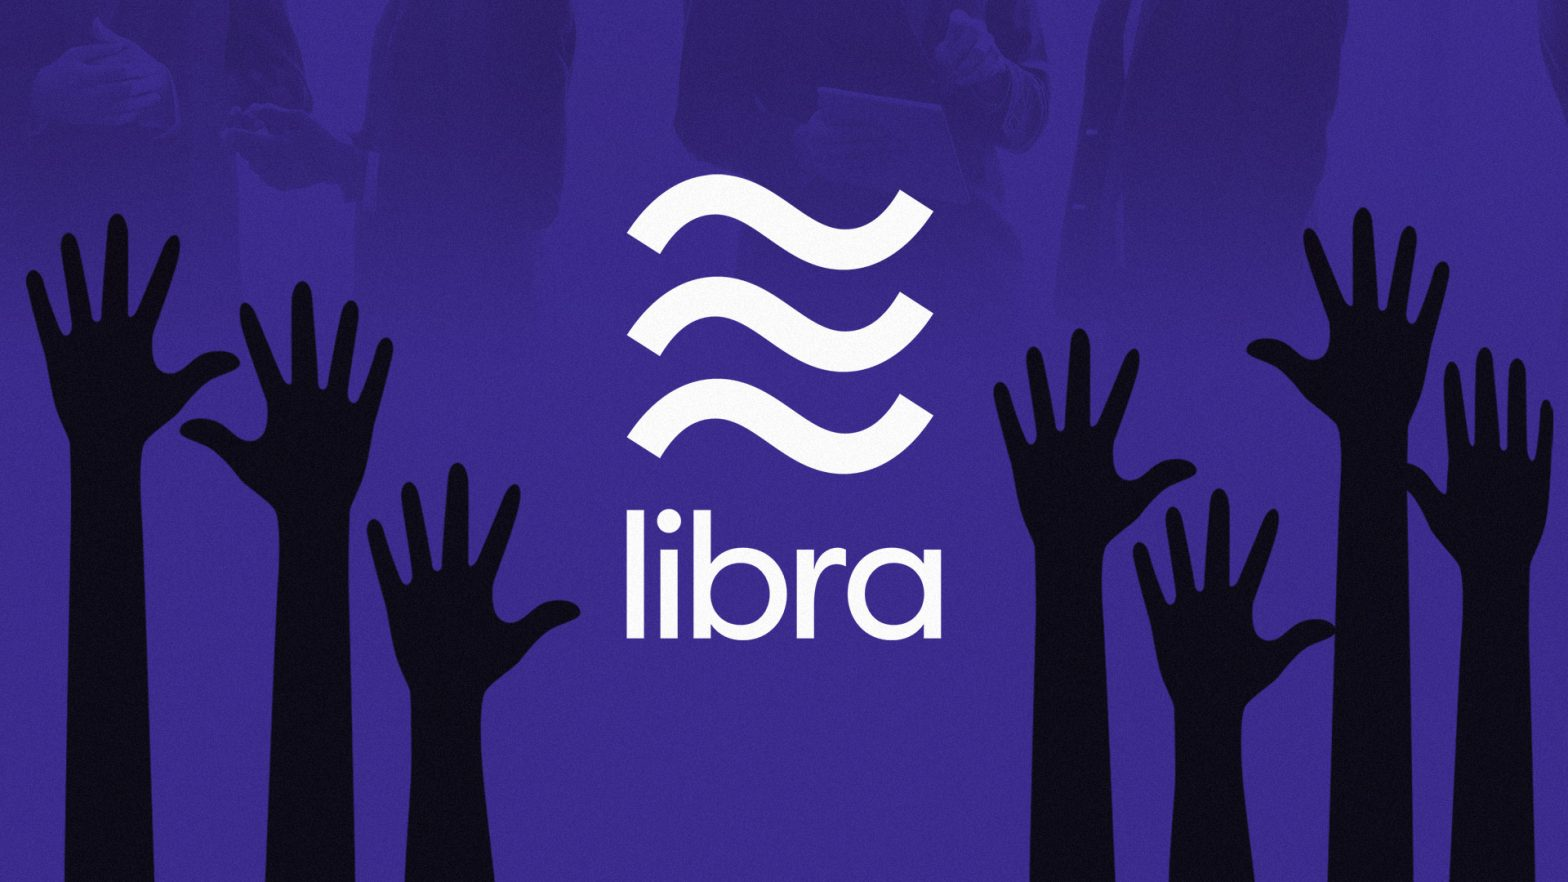 Bank for International Settlements warns: Facebook's Libra crypto project could pose risks to banks – The Block Crypto